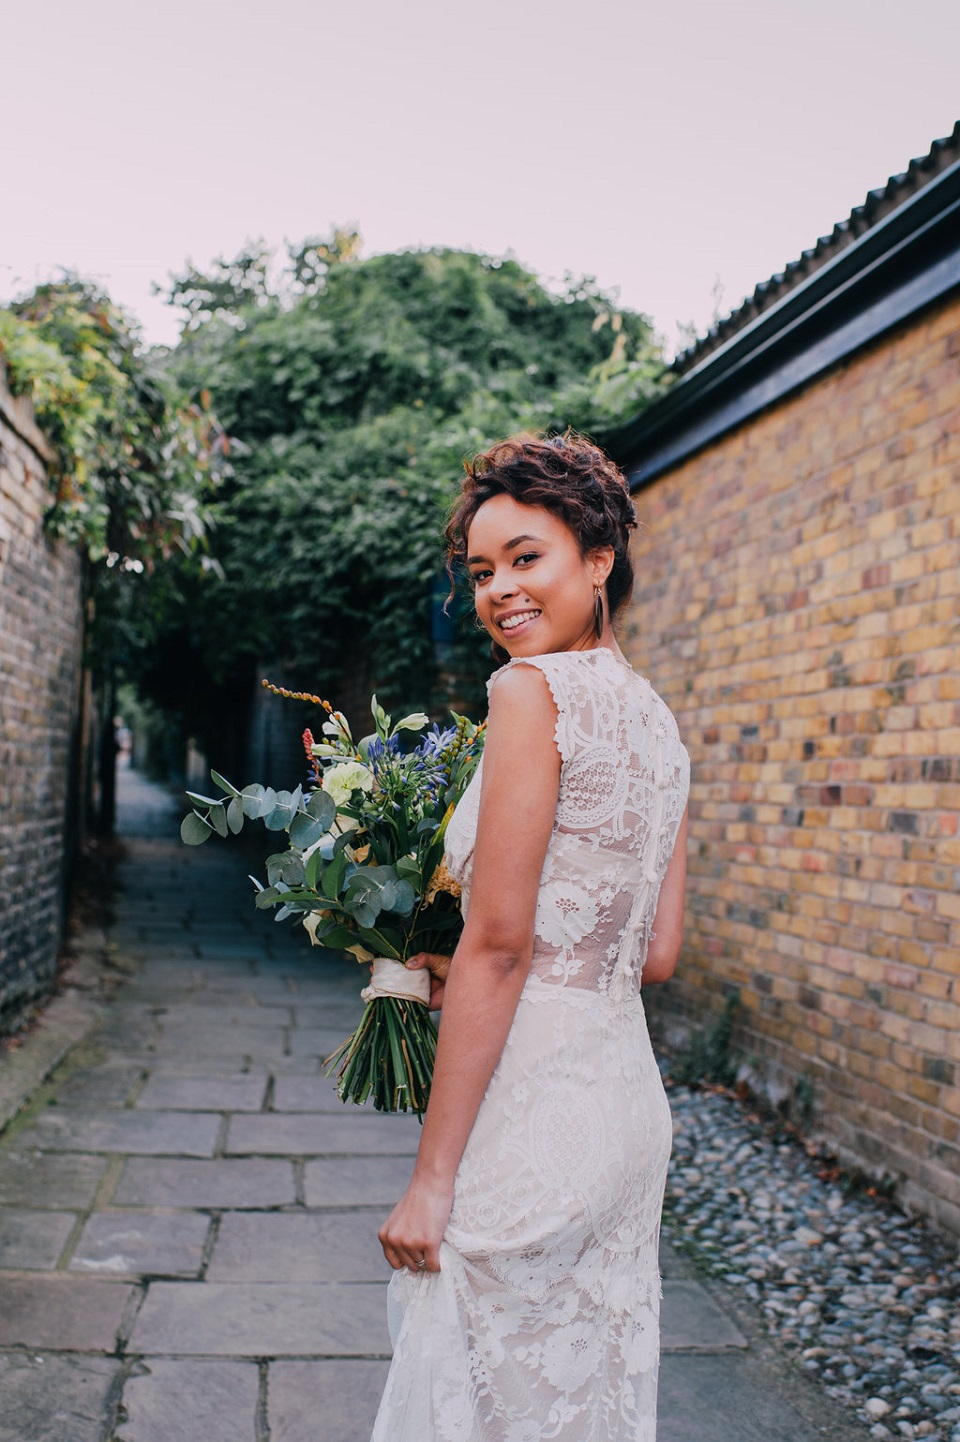 Nulyweds - Anne Schwarz Photography - London Wedding 76